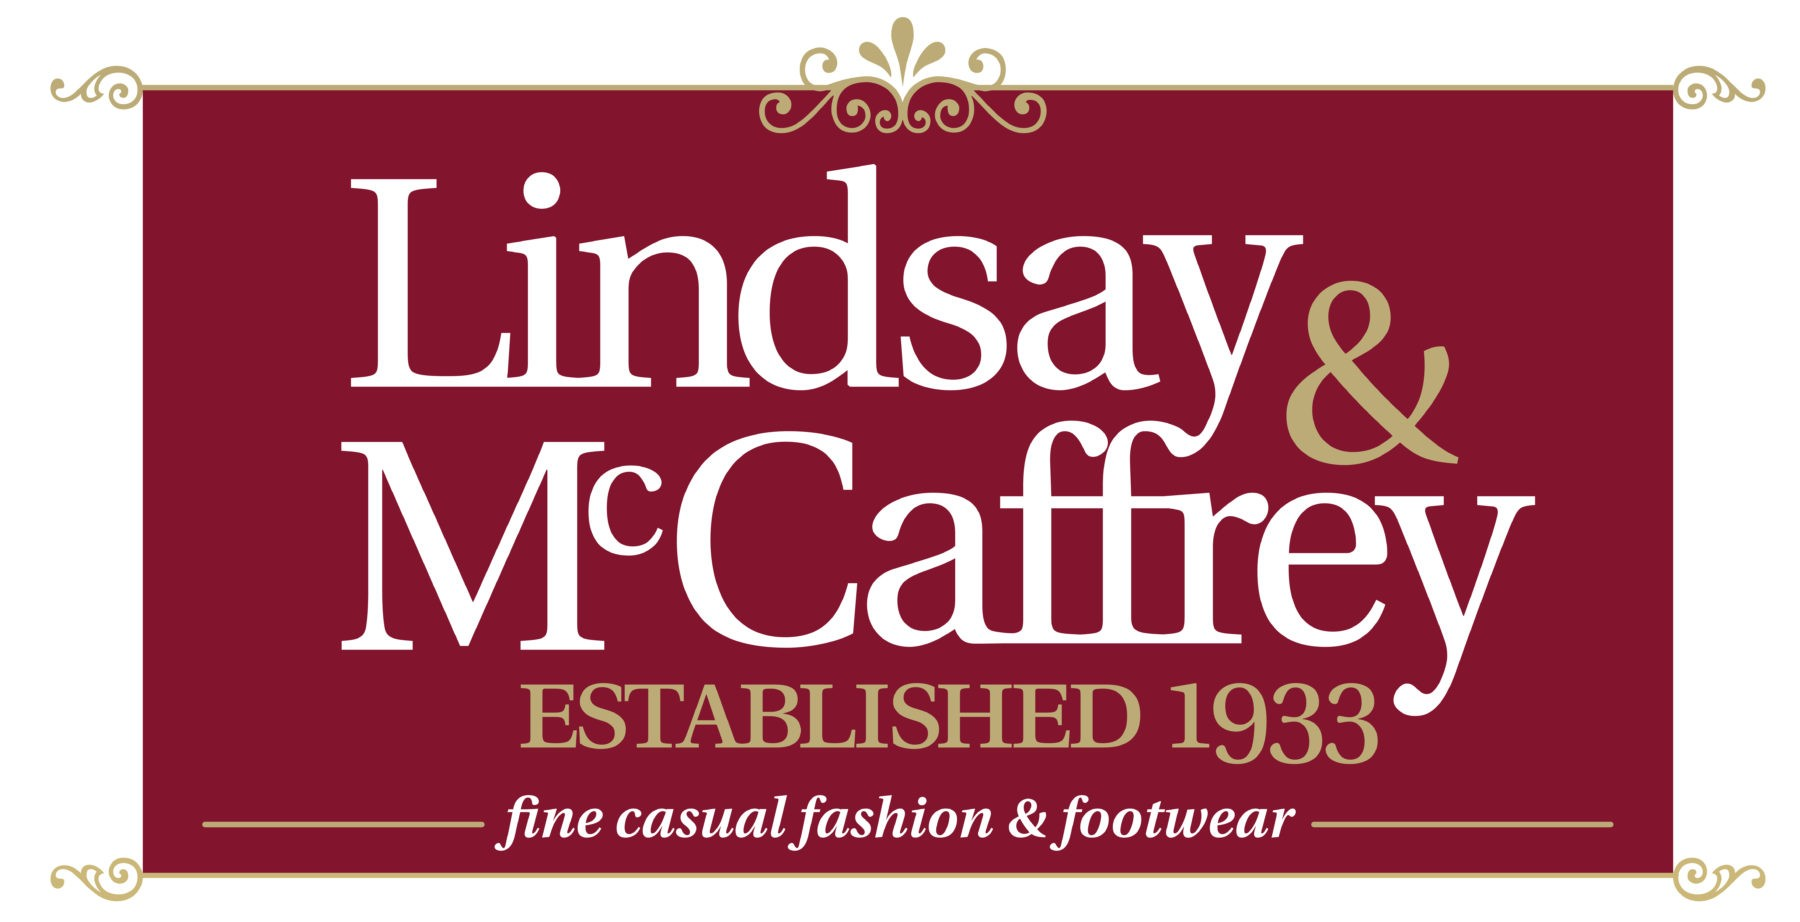 Lindsay & McCaffrey logo - Business in Manotick